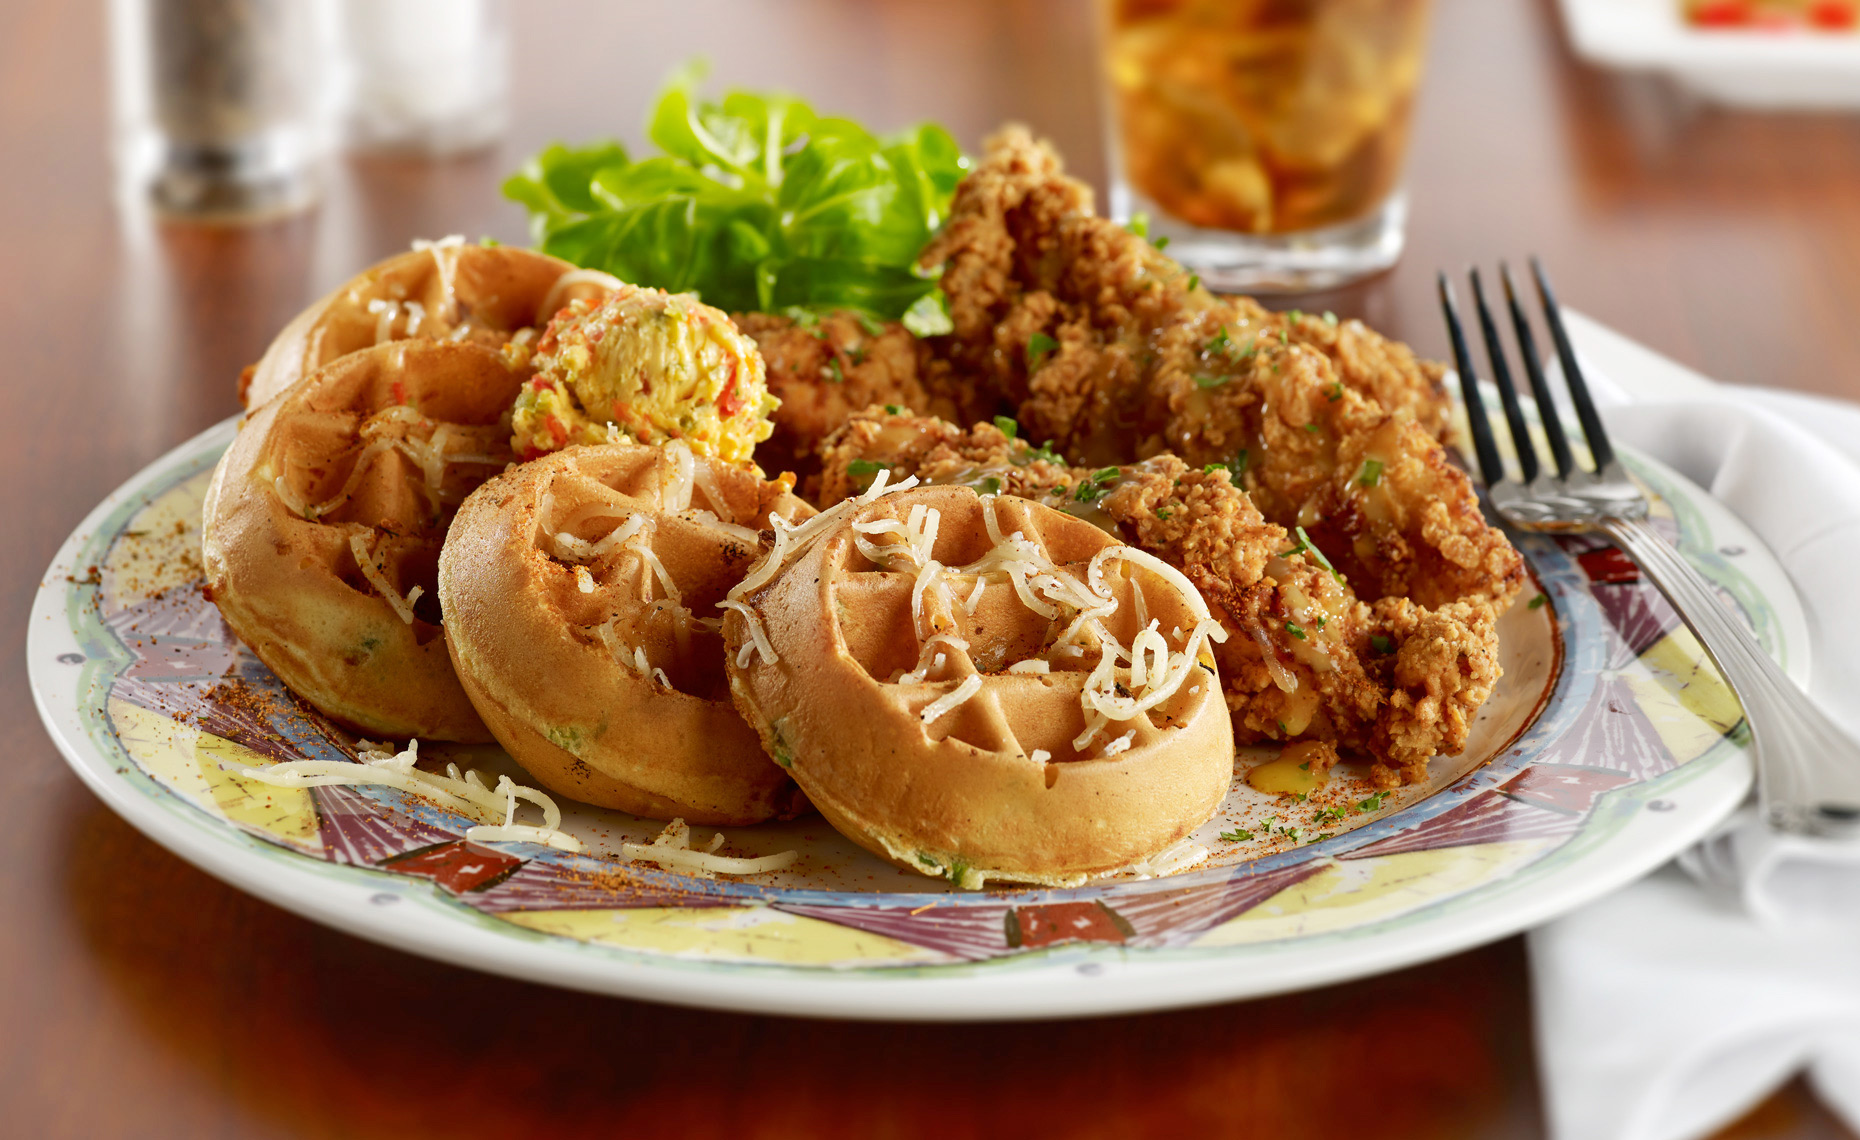 Chicken-and-Waffles_23184